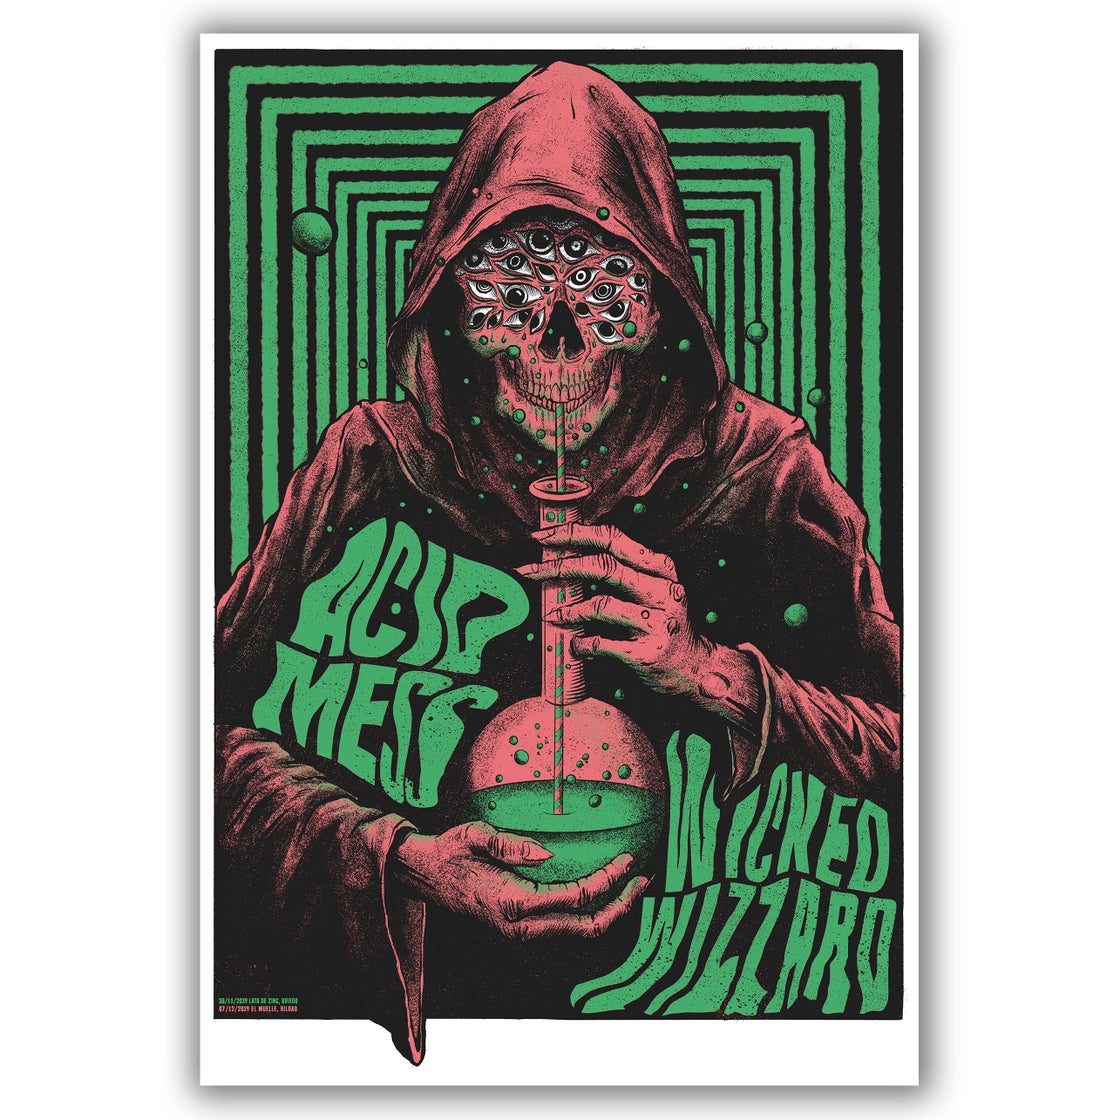 Image of Wicked Wizzard + Acid Mess Poster